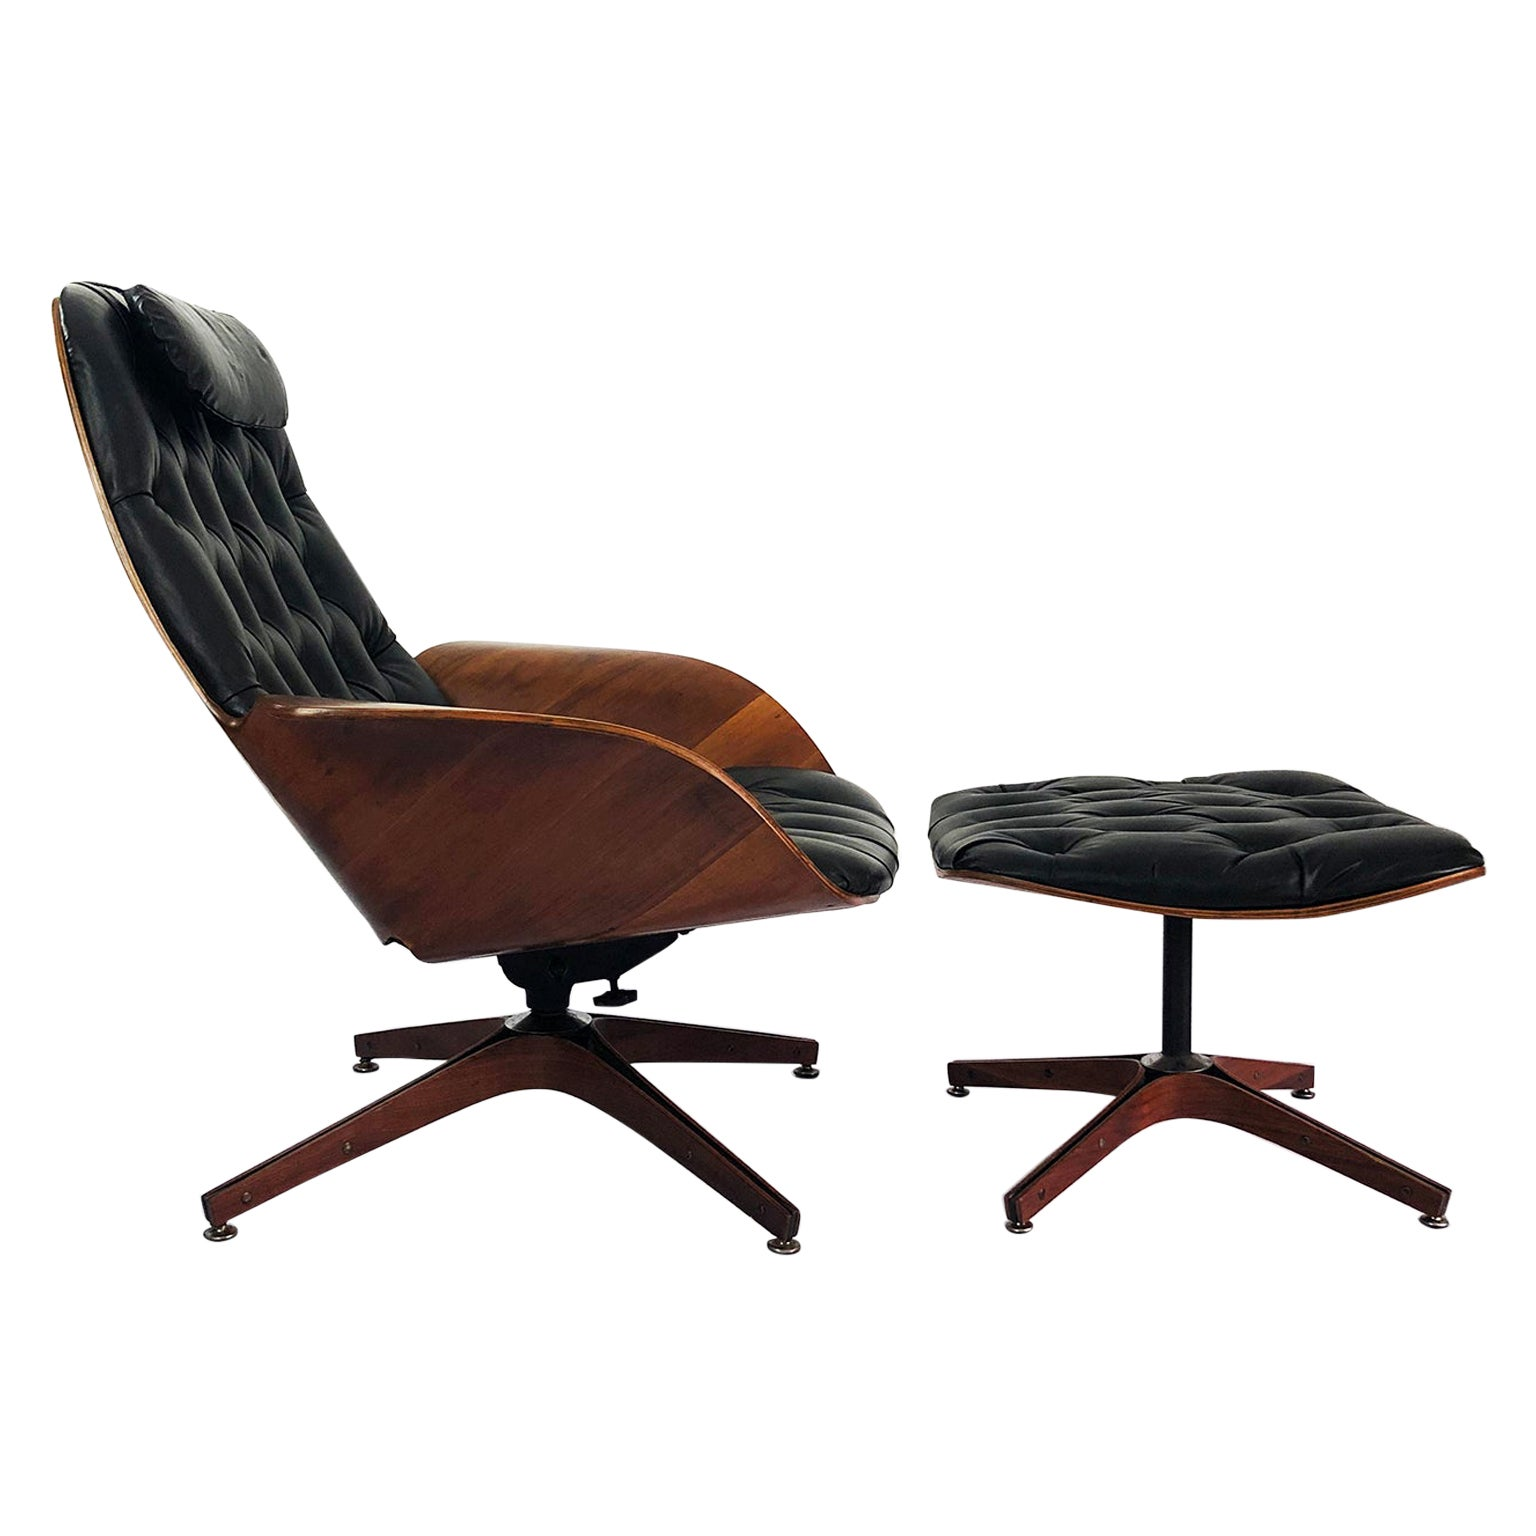 George Mulhauser Lounger Chair and Ottoman for Plycraft